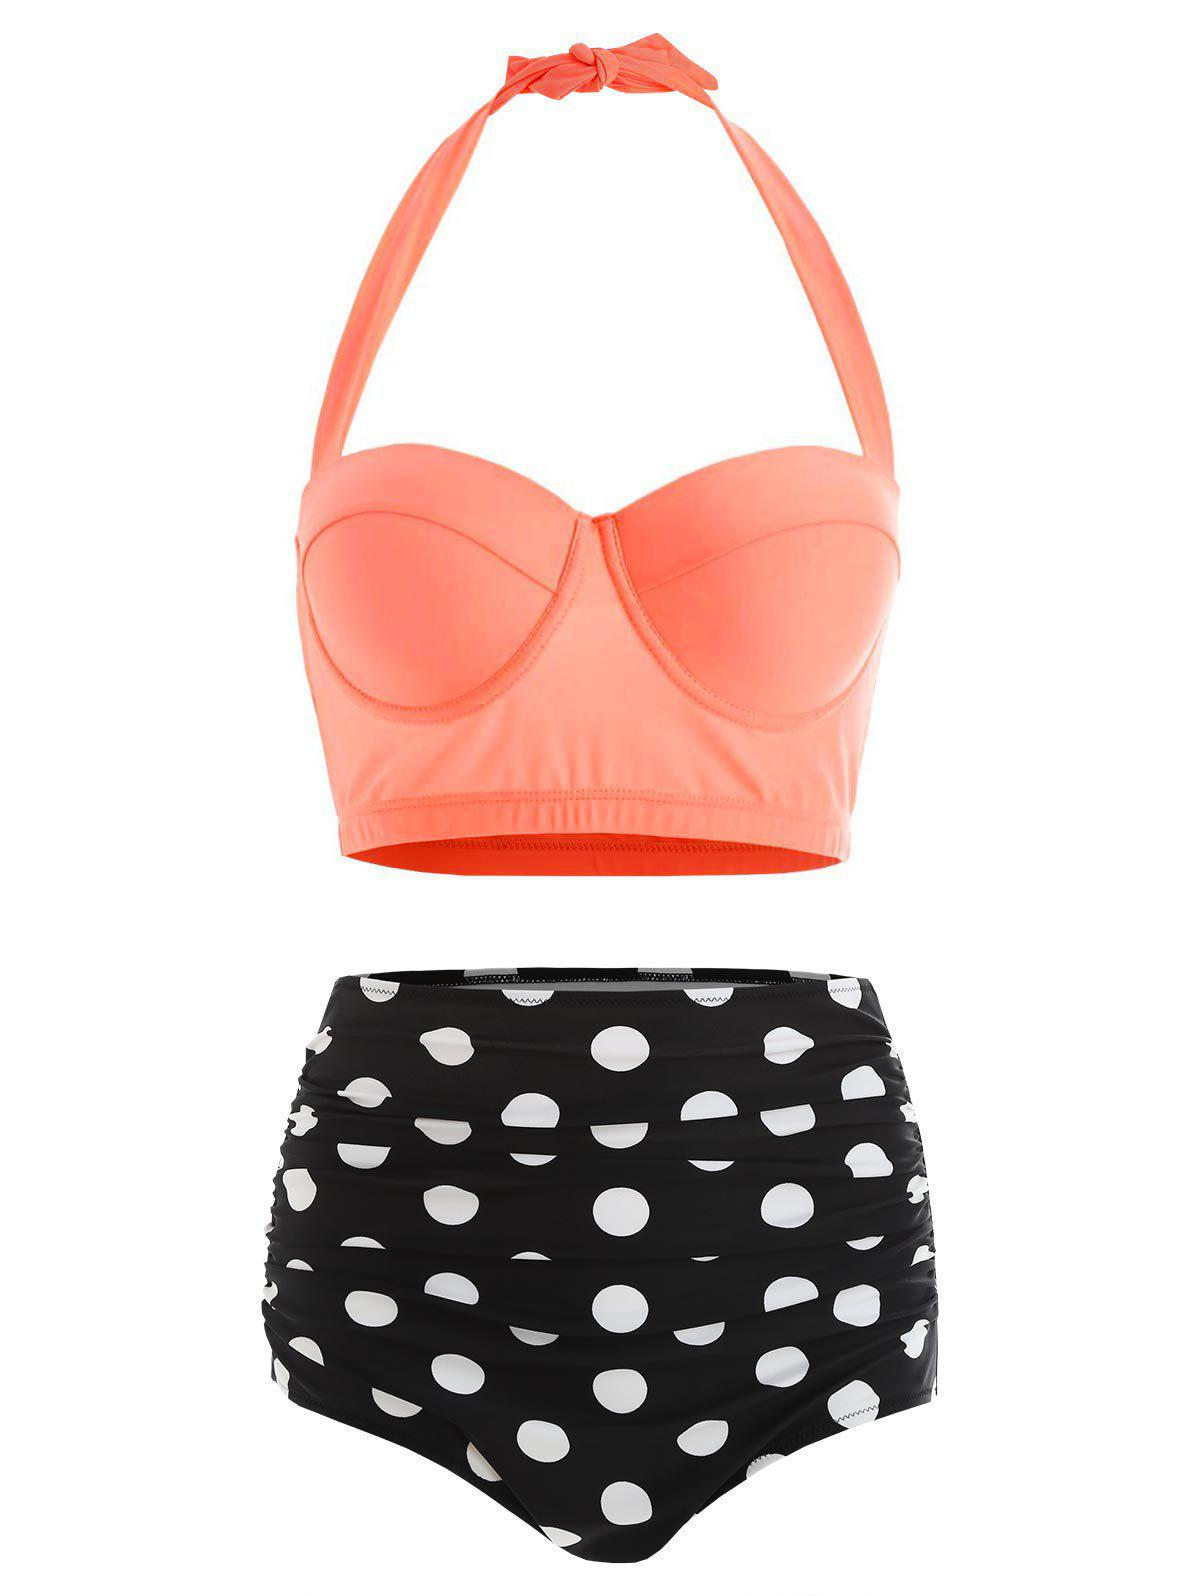 Plus Size Halter High Waist Polka Dot Bikini - SUNRISE ORANGE 3XL